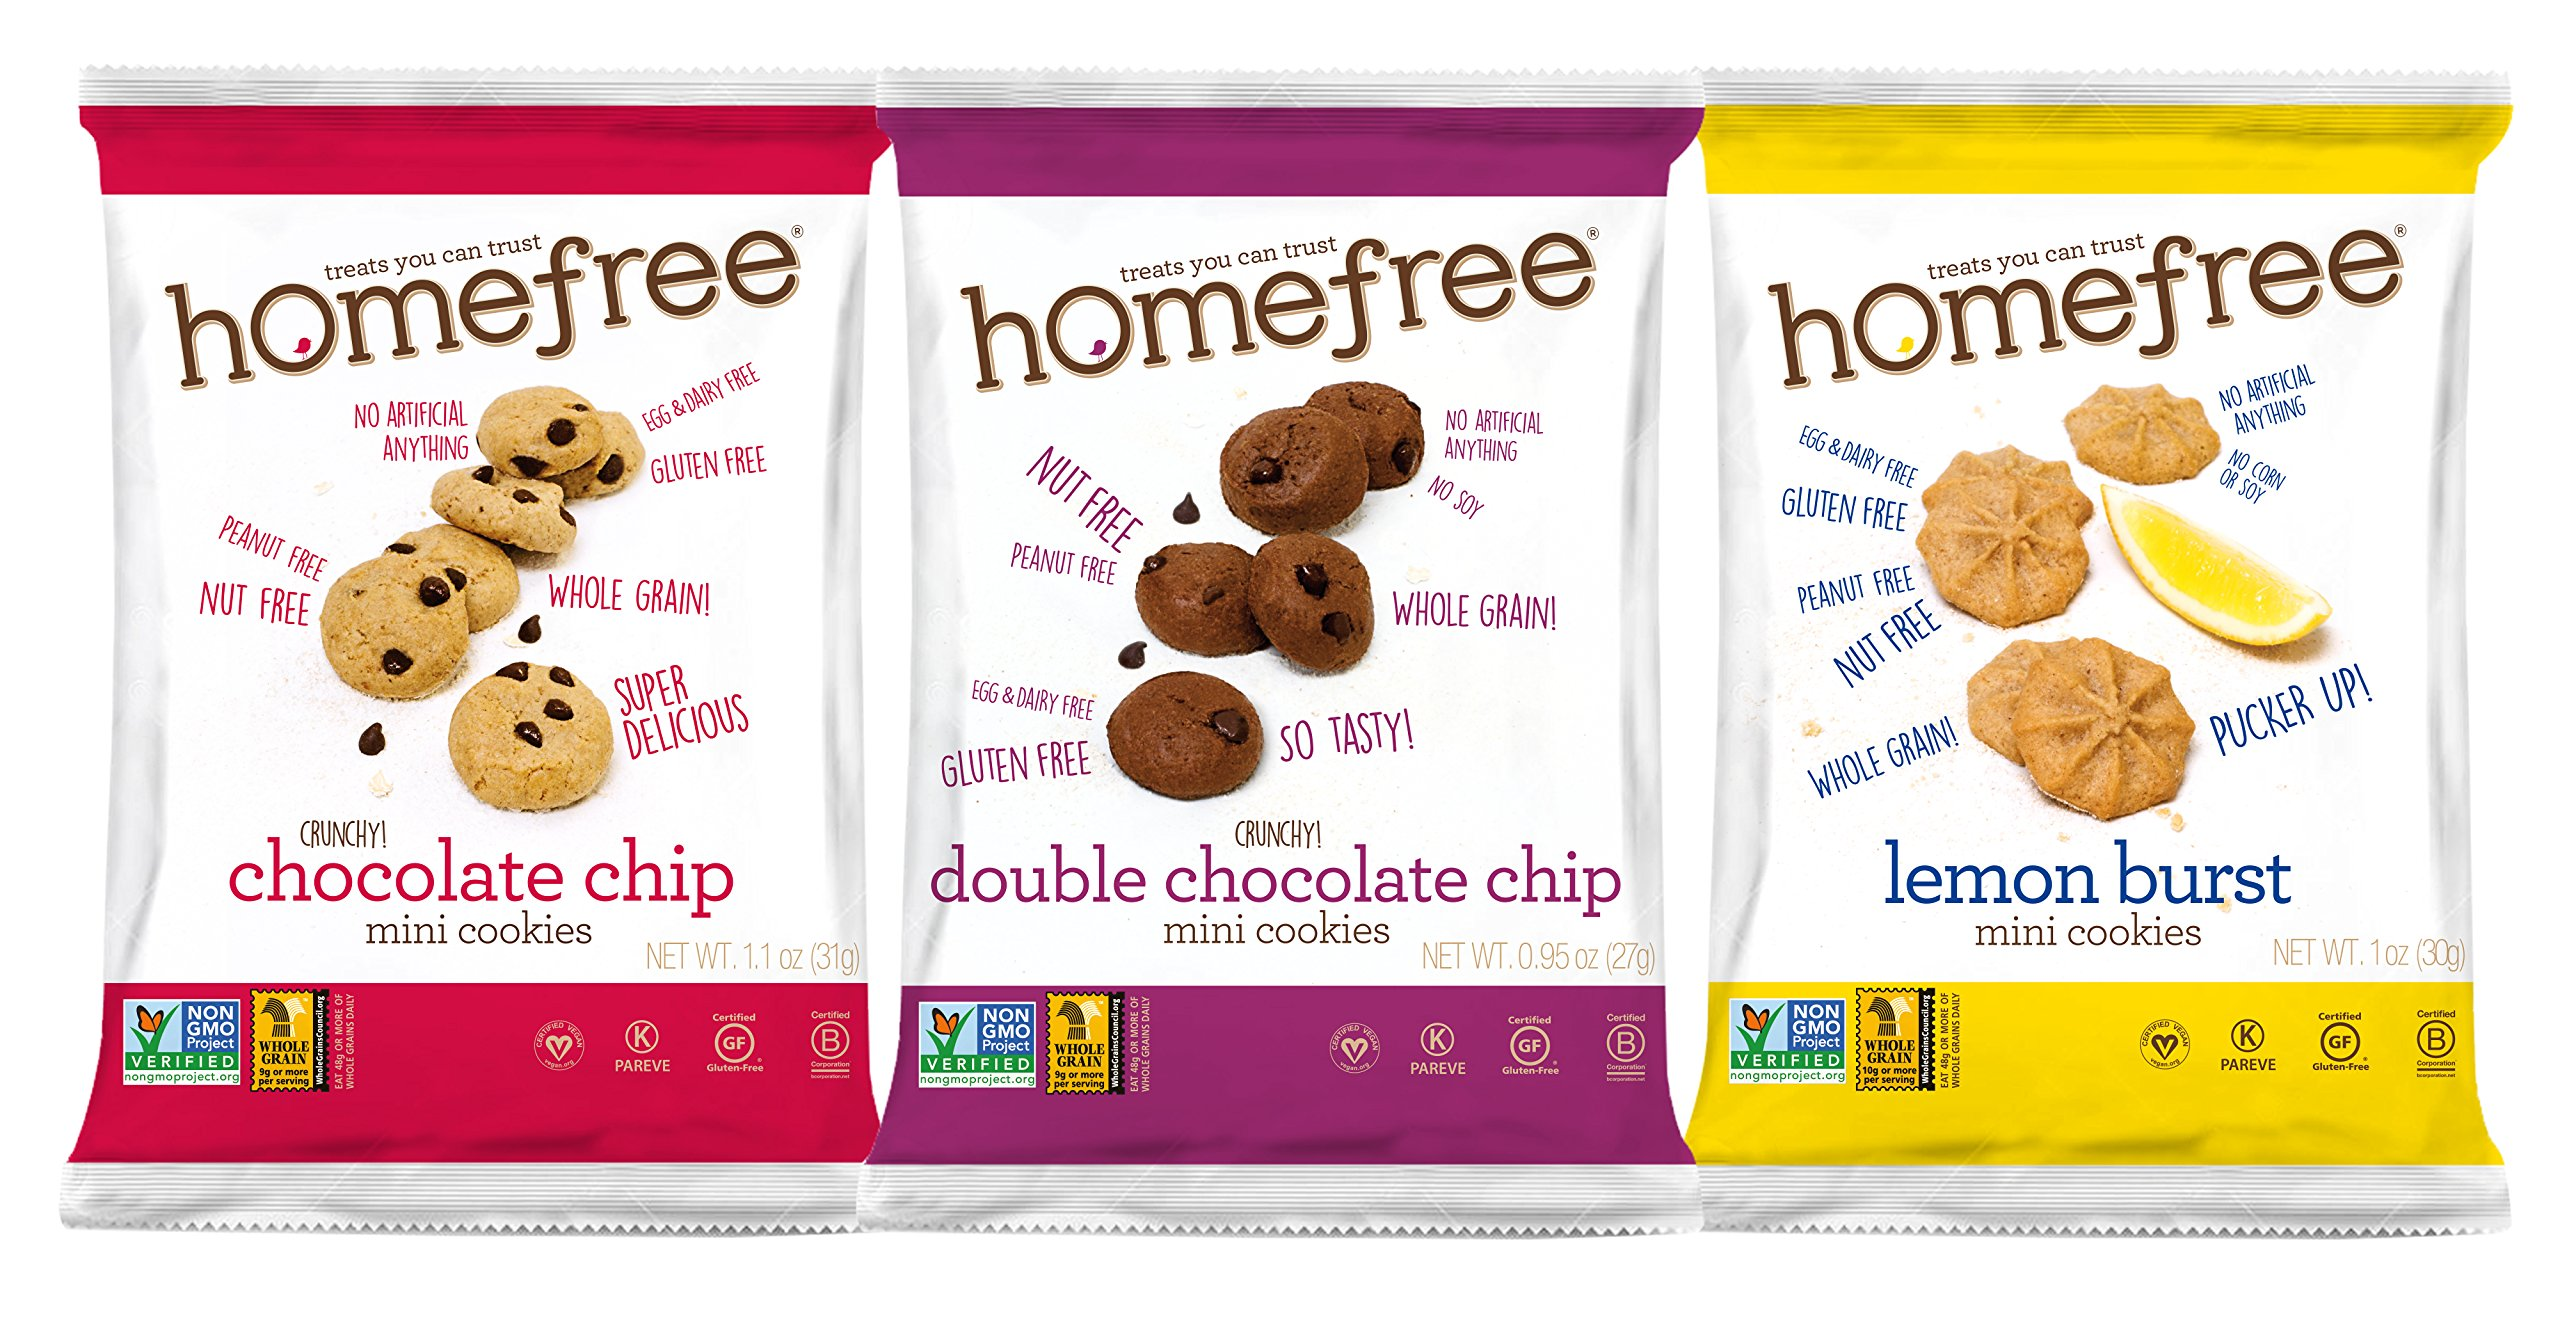 Homefree Treats You Can Trust Gluten Free Mini's, Variety pack with Lemon, 30 Count by Homefree Treats You Can Trust